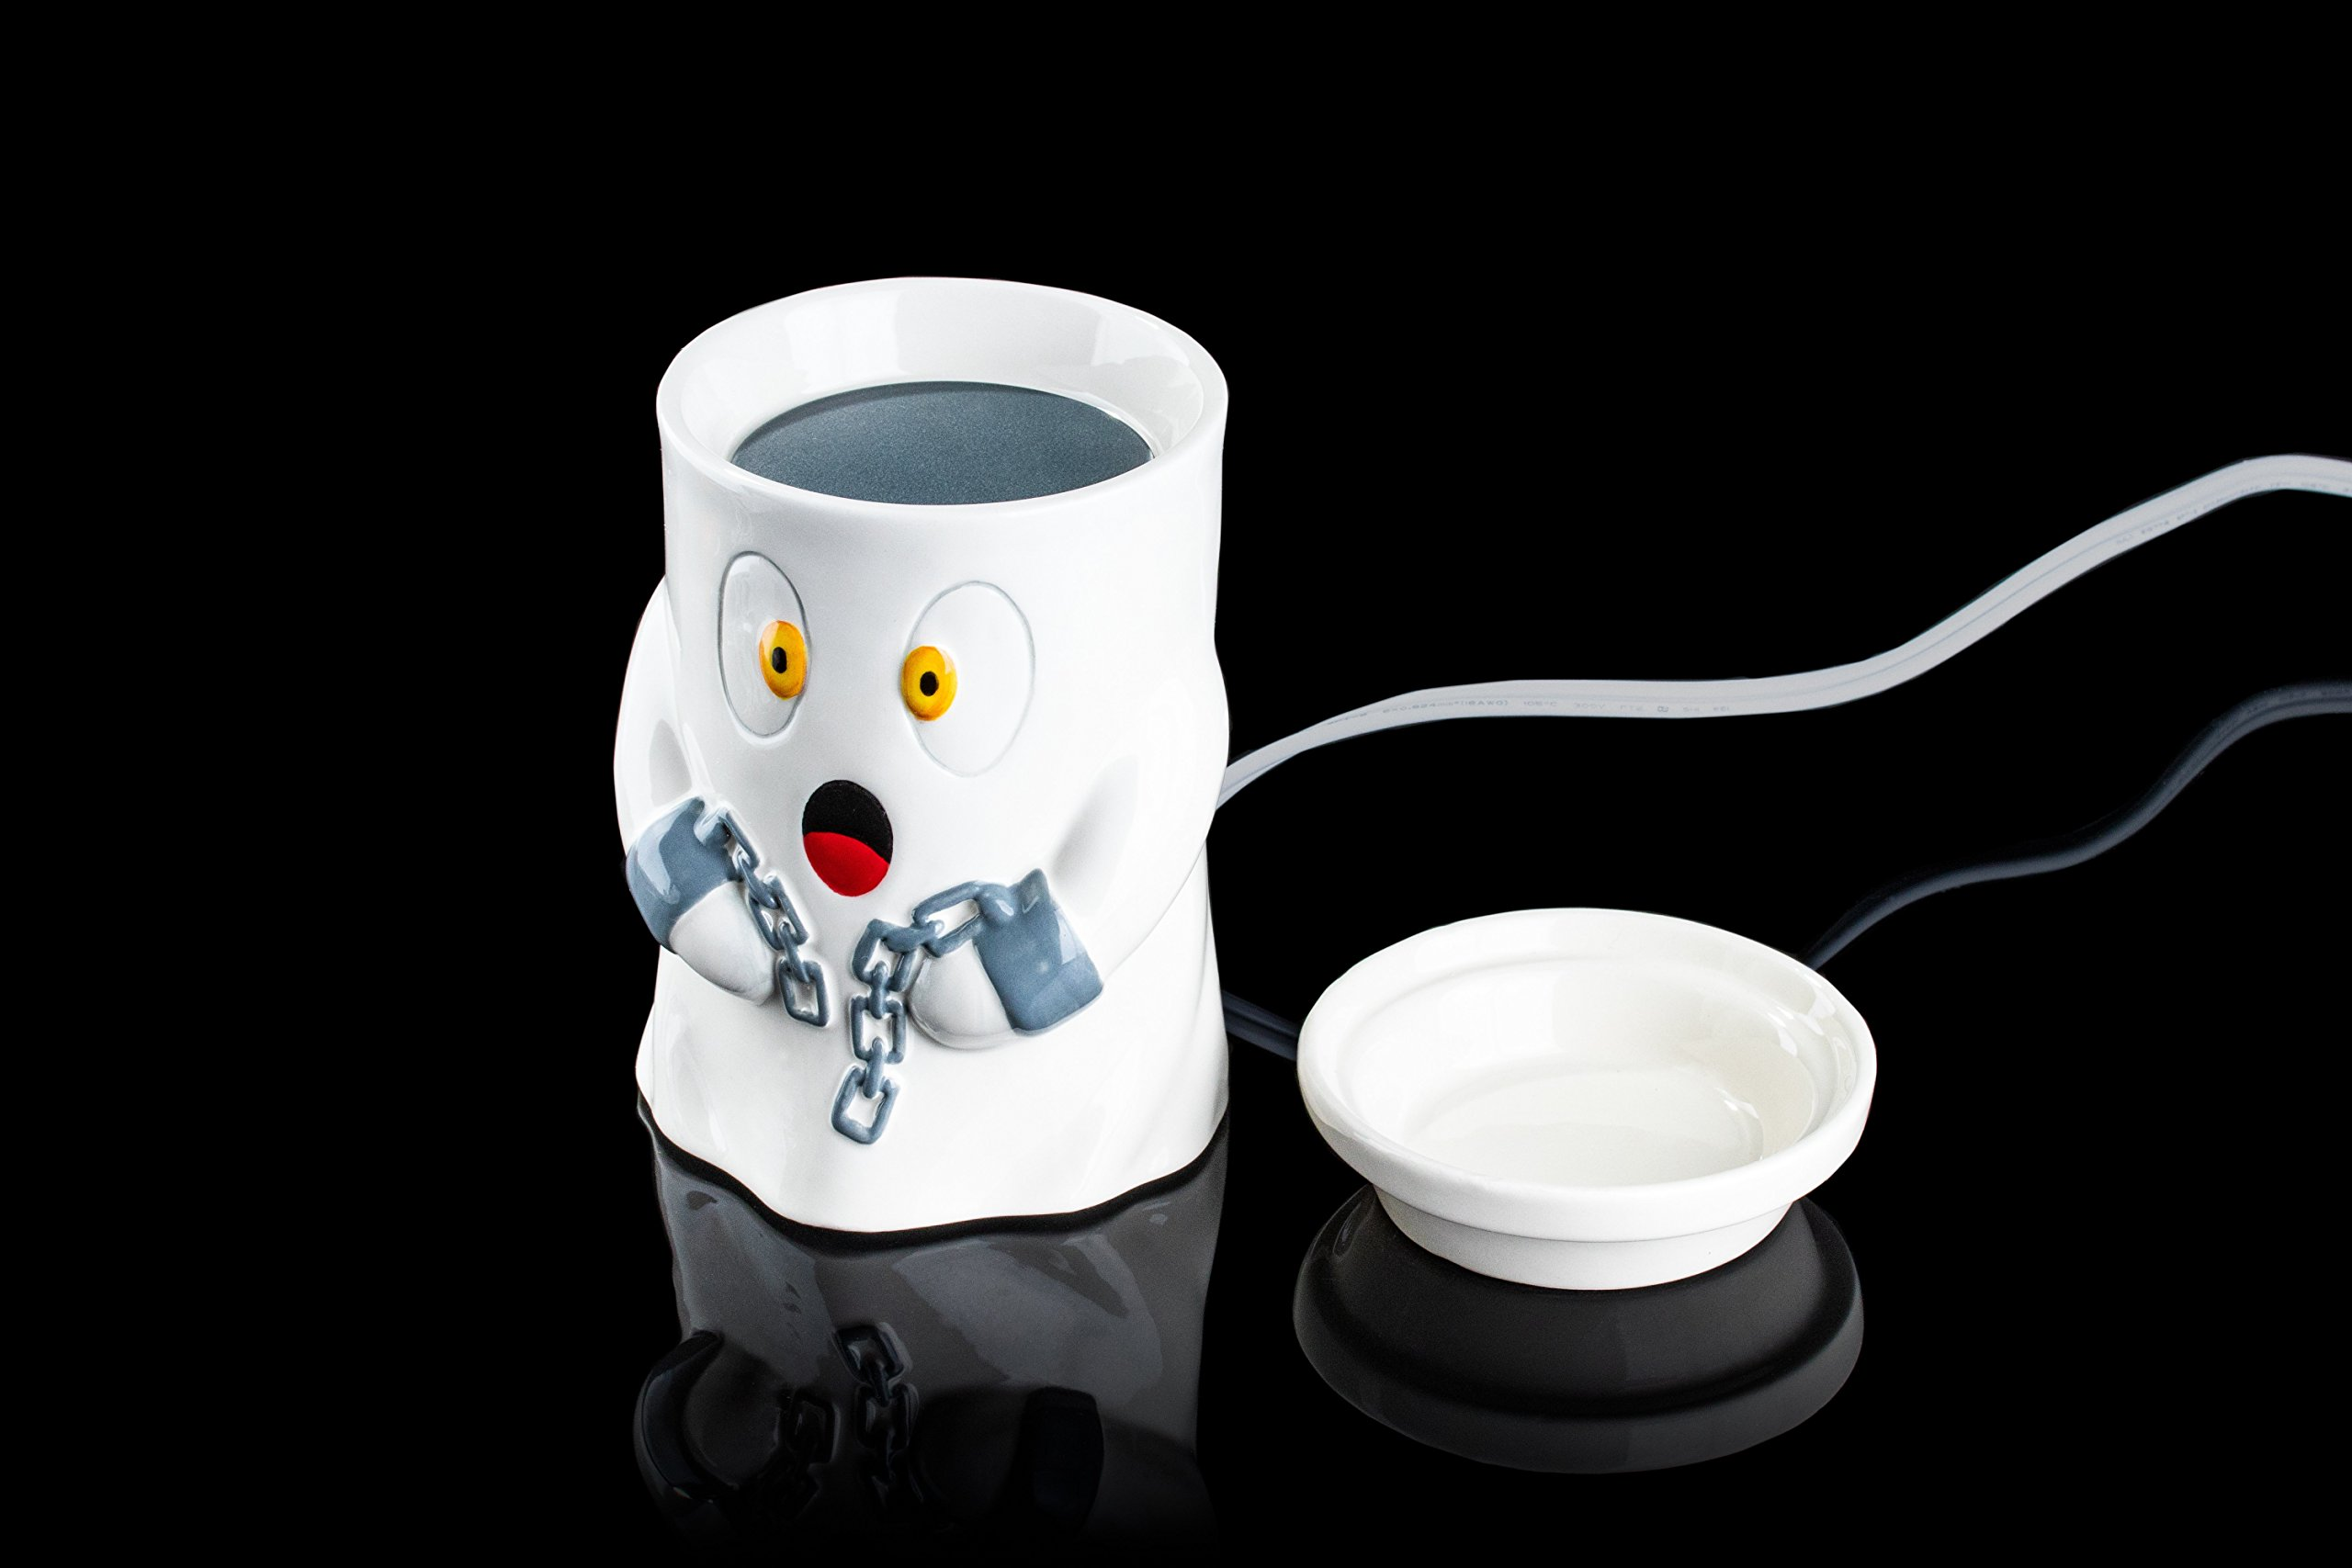 The Ghost Spooky / Adorable Wax Warmer by HalloweenForevermore.com